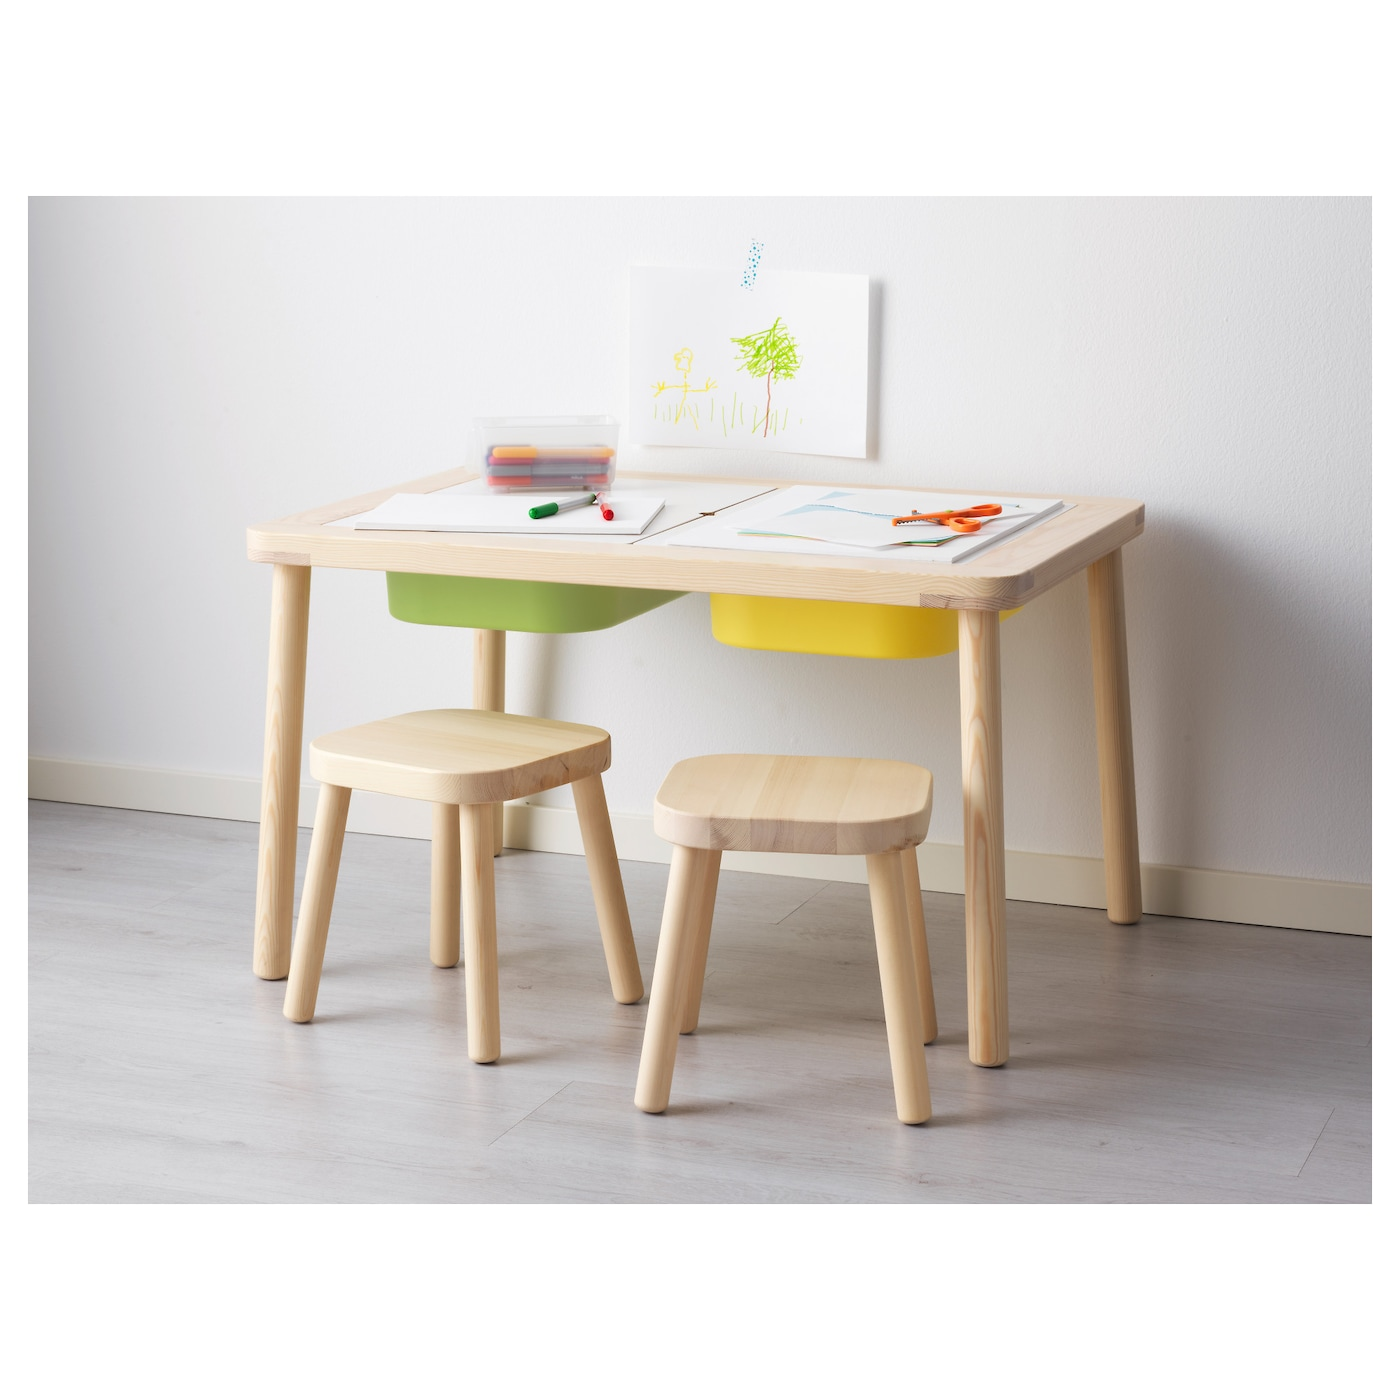 flisat children 39 s table 83x58 cm ikea